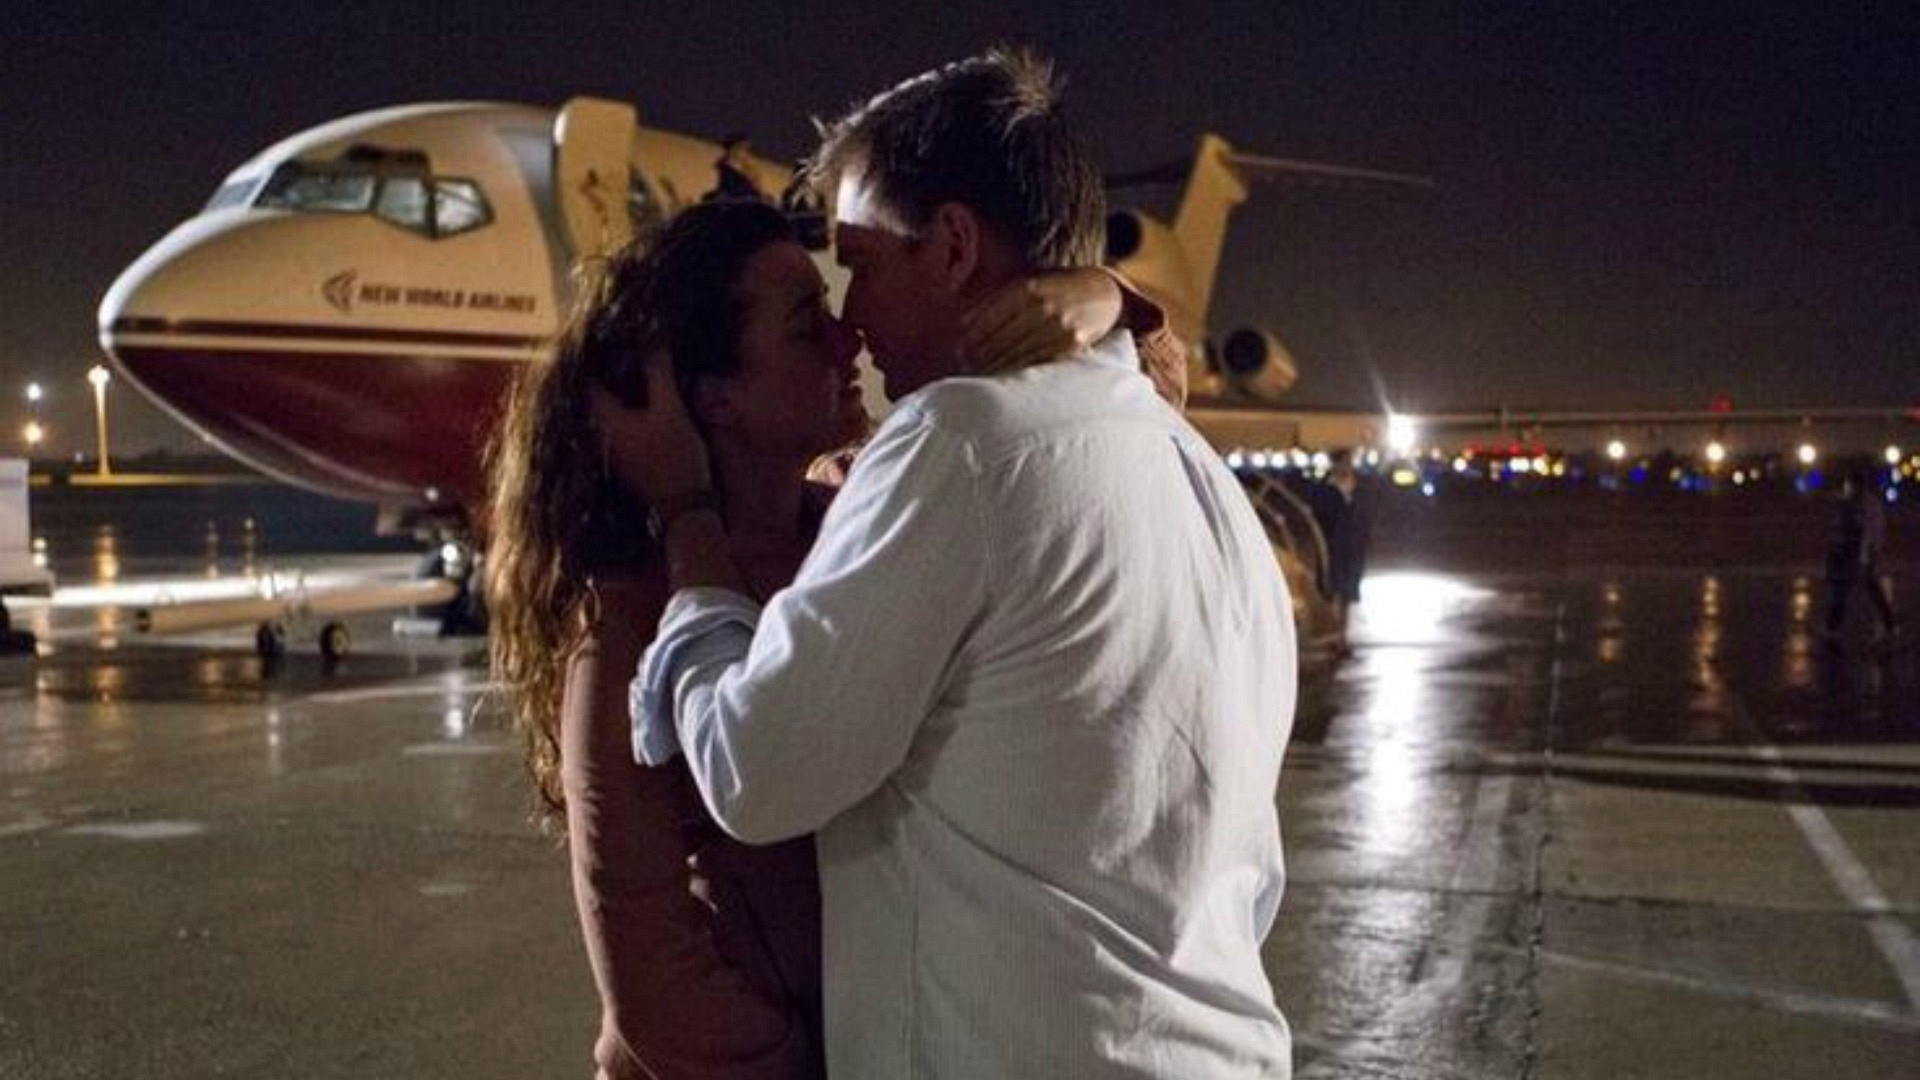 DiNozzo and Ziva say goodbye